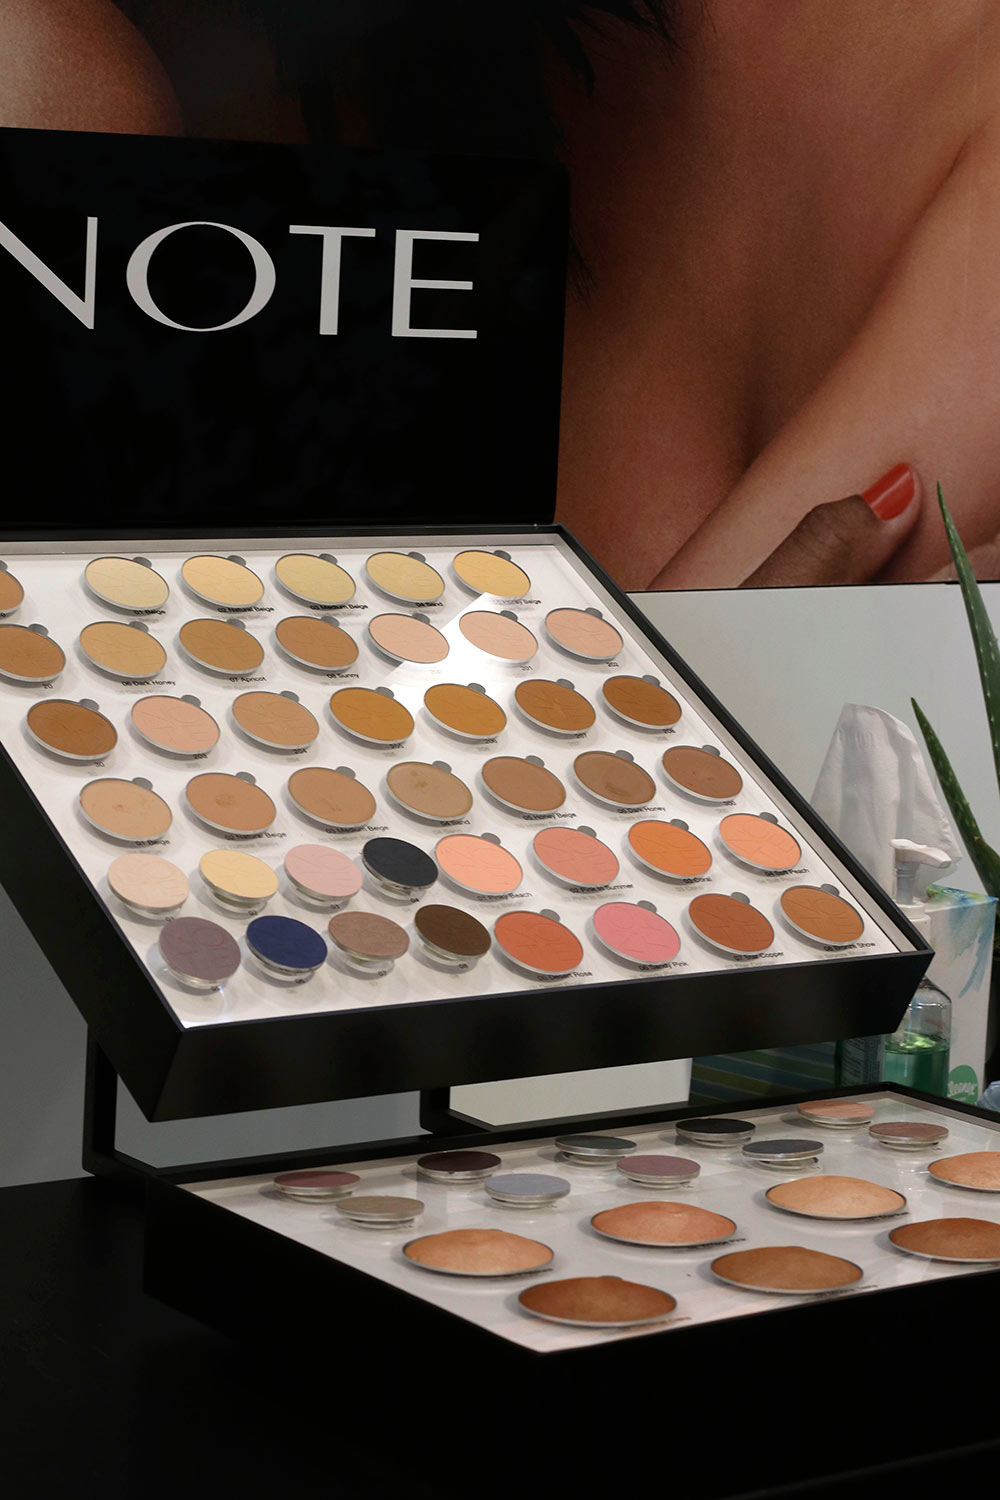 note cosmetics display